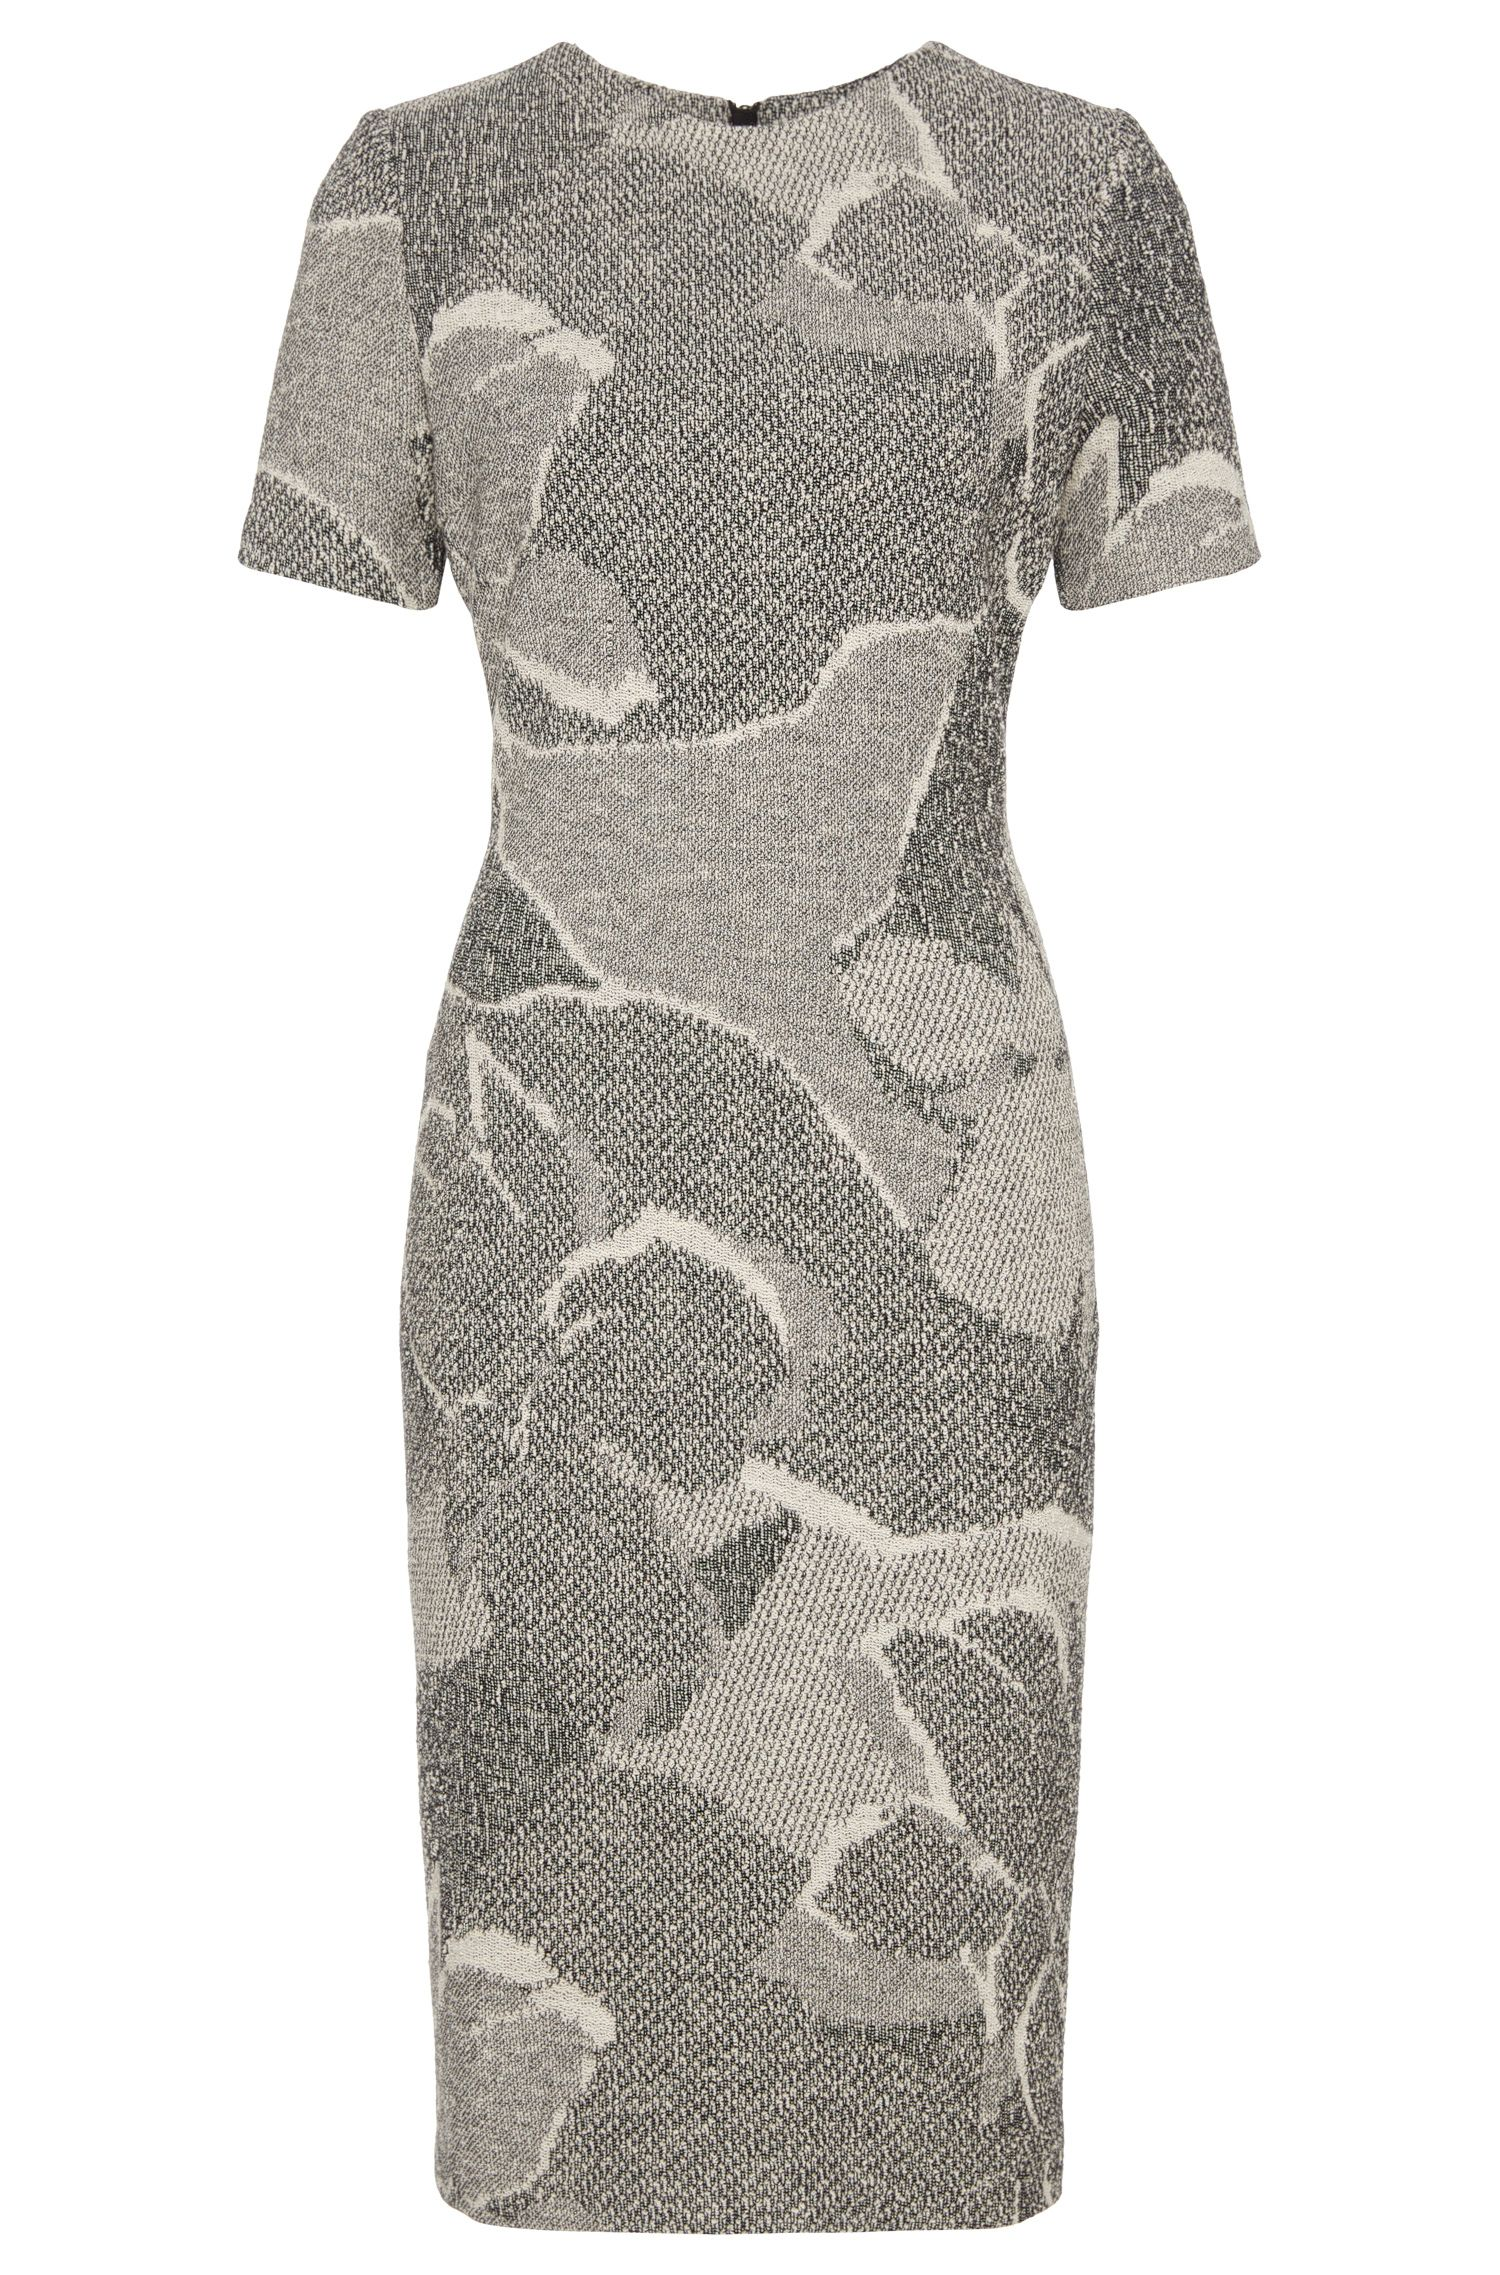 Patterned sheath dress in cotton blend: 'Haraly'